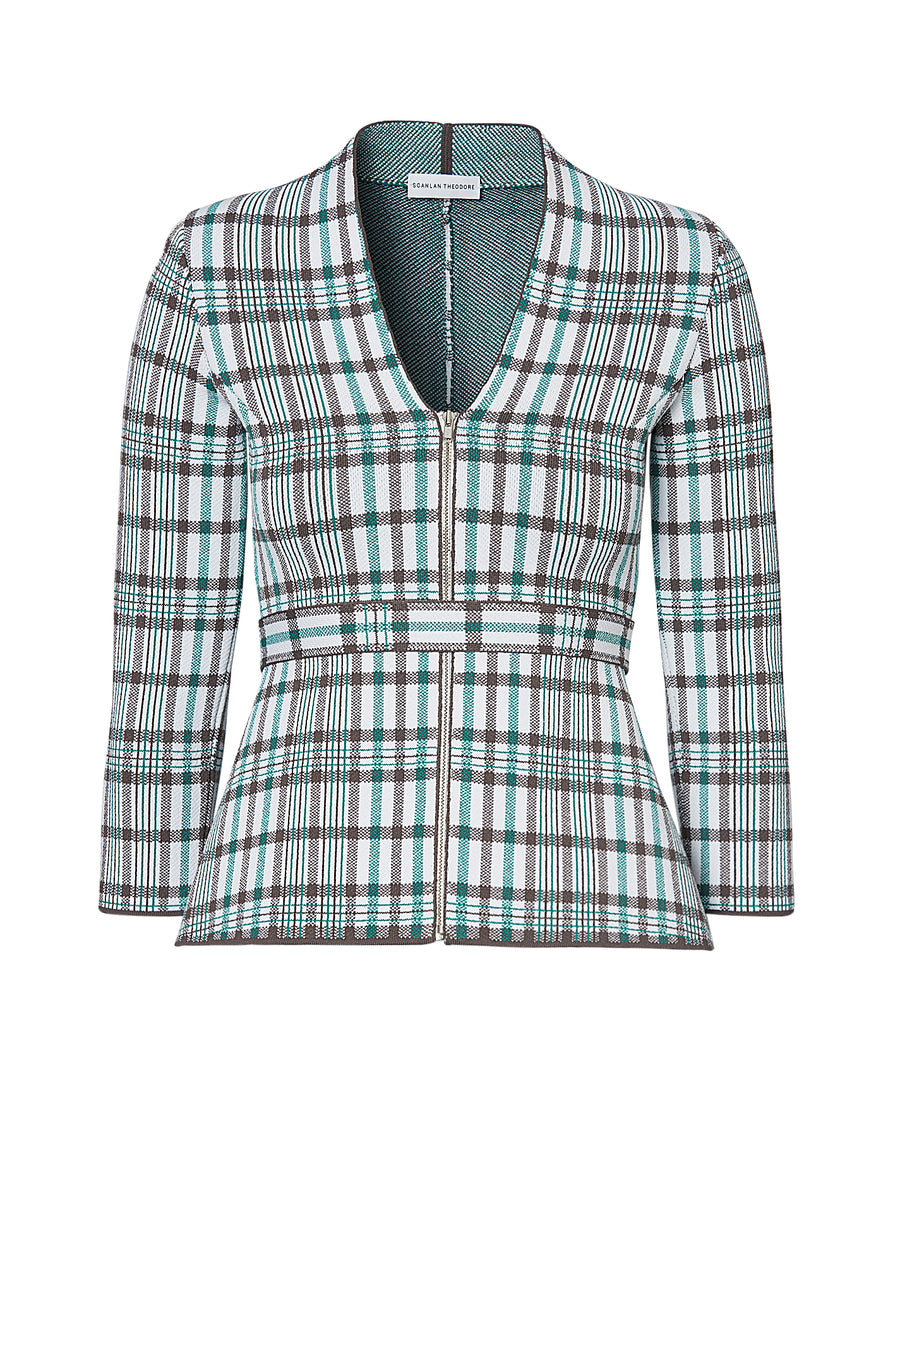 CREPE KNIT PLAID JACKET, TORBA color